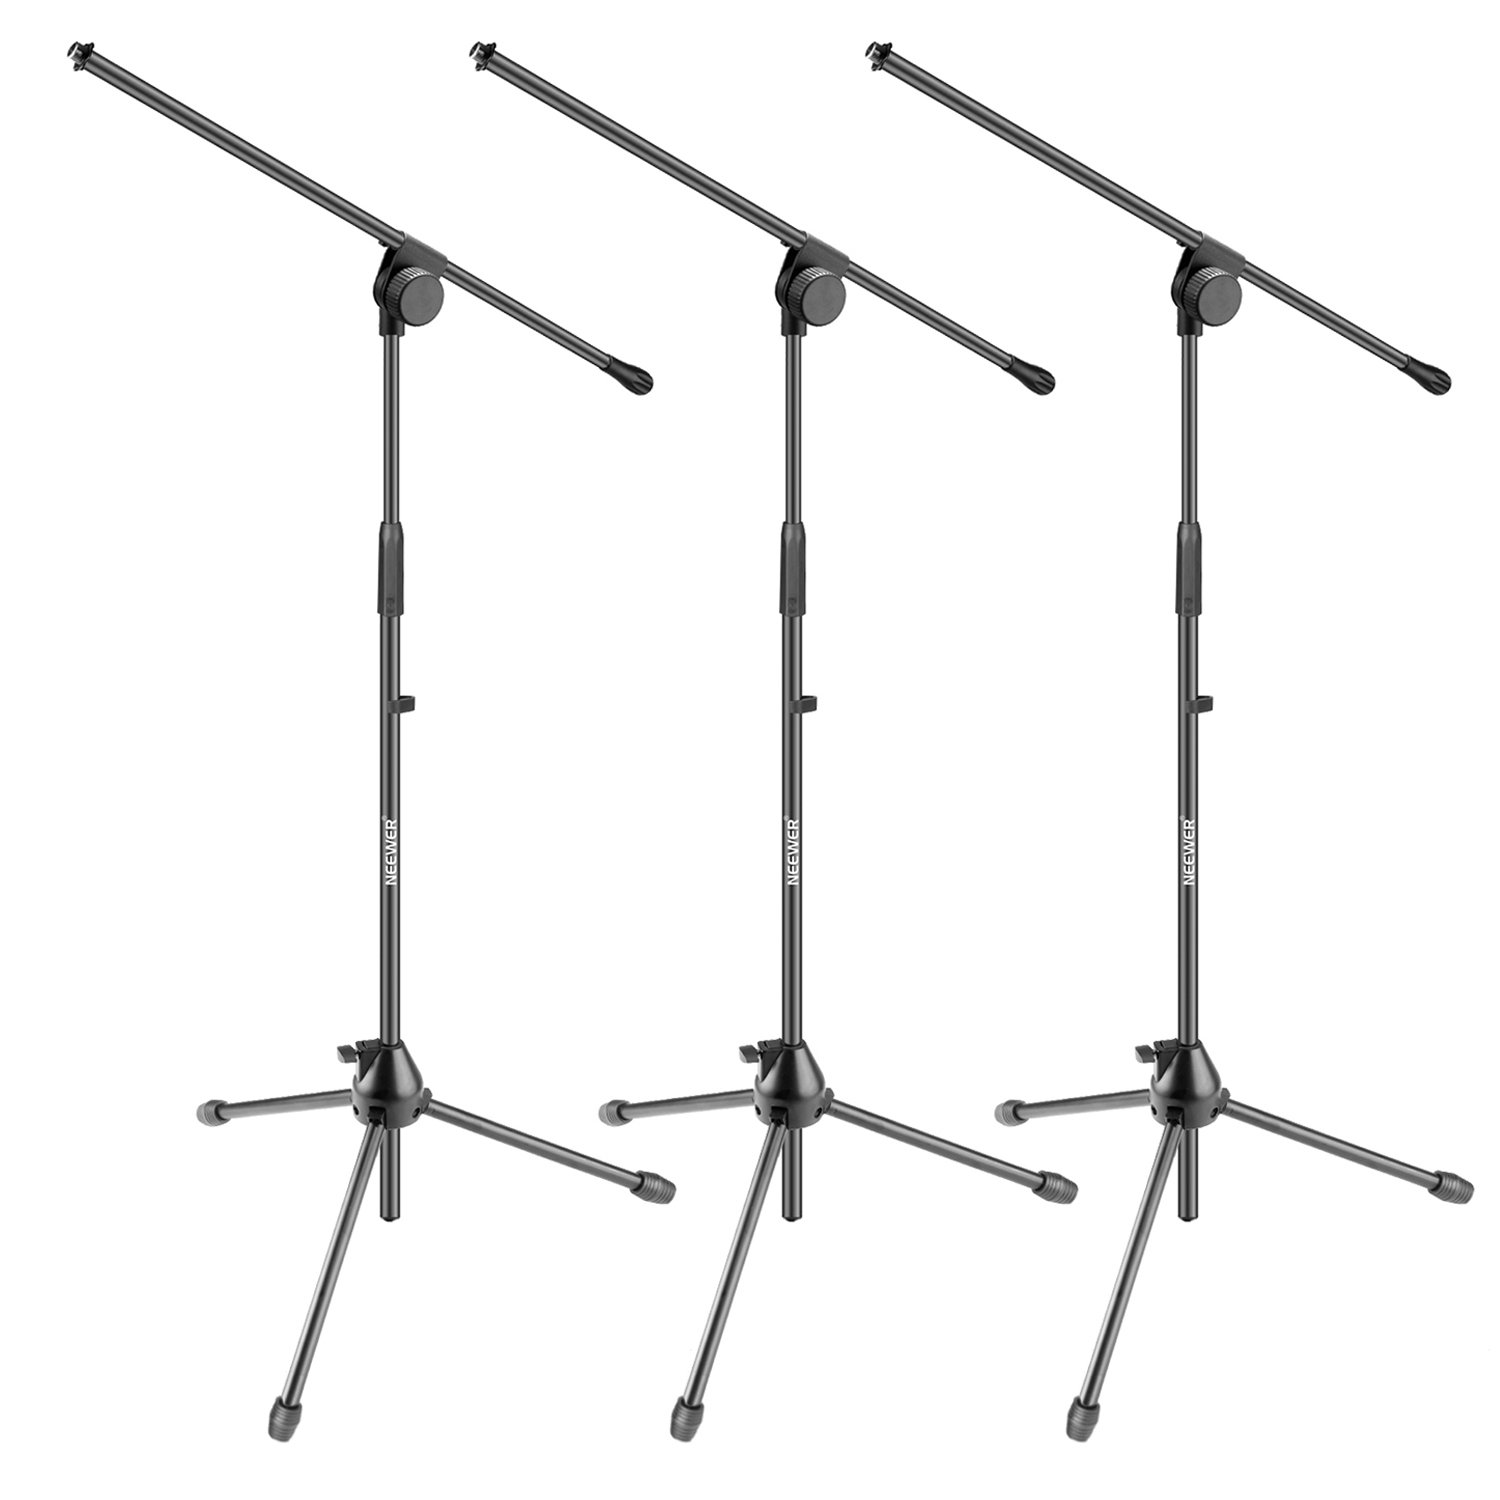 Neewer 3 Pieces Tripod Boom Floor Microphone Stands for Stage or Studio Use- Aluminum Alloy, Foldable and Rotatable, Adjustable Height Maximum 37.4 inches/95 centimeters (NW006-1) 90091421